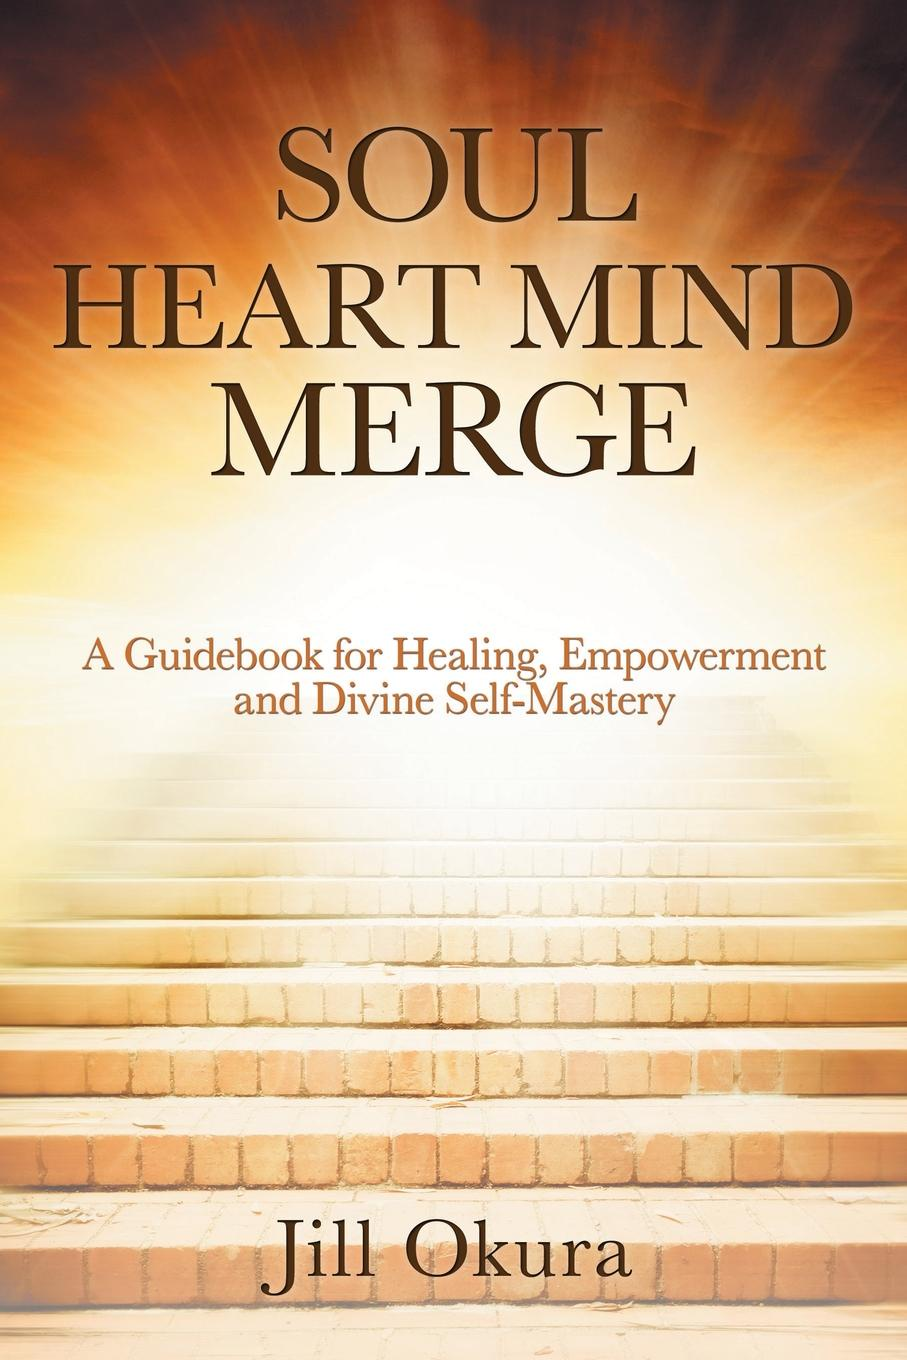 Jill Okura Soul Heart Mind Merge. A Guidebook for Healing, Empowerment and Divine Self-Mastery автор не указан the wisdom of angels concerning divine love and divine wisdom